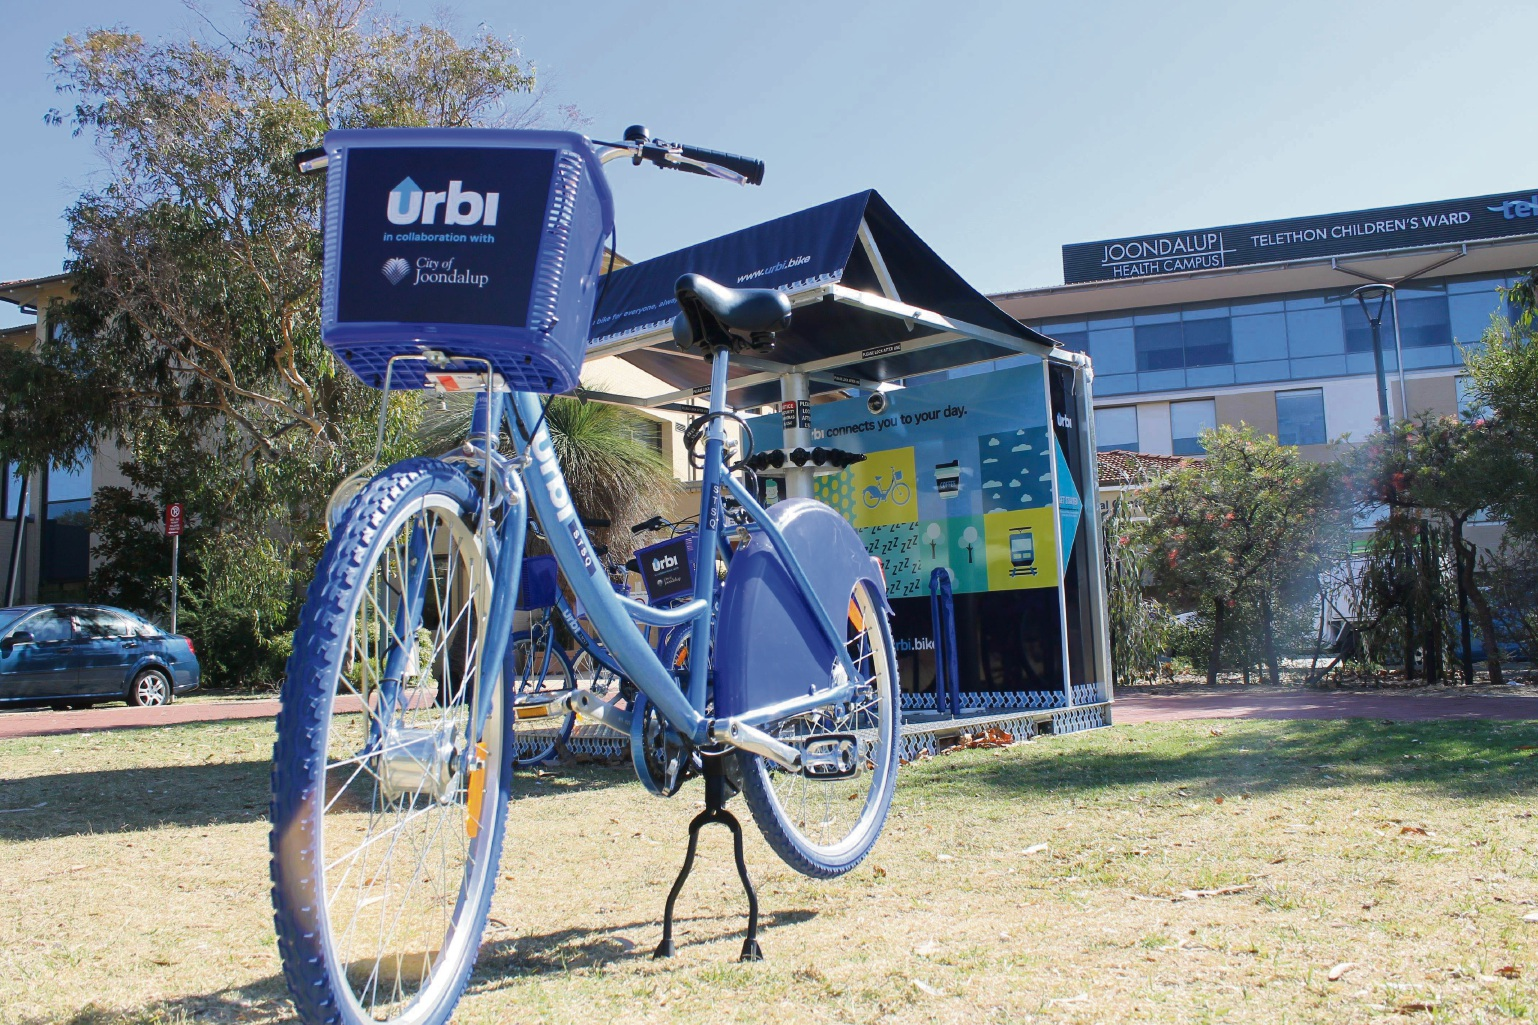 City of Joondalup launching trial of bike-share facilities